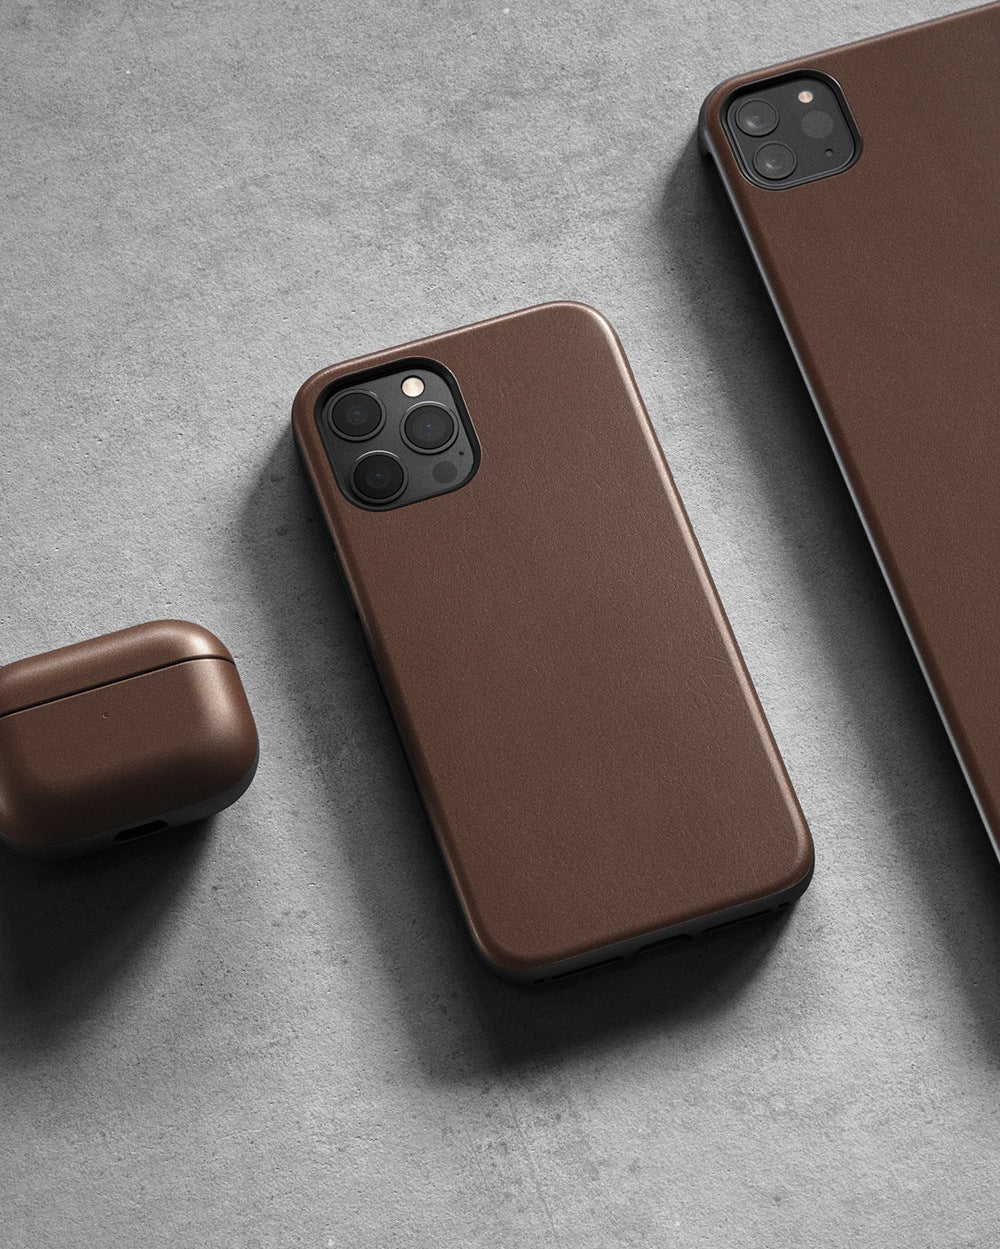 https://cdn.shopify.com/s/files/1/0384/6721/files/iPhone_12_Series_-_Rugged_Case_-_Lifestyle_02_-_Rustic_Brown_Leather_-_MOBILE.jpg?v=1602795153